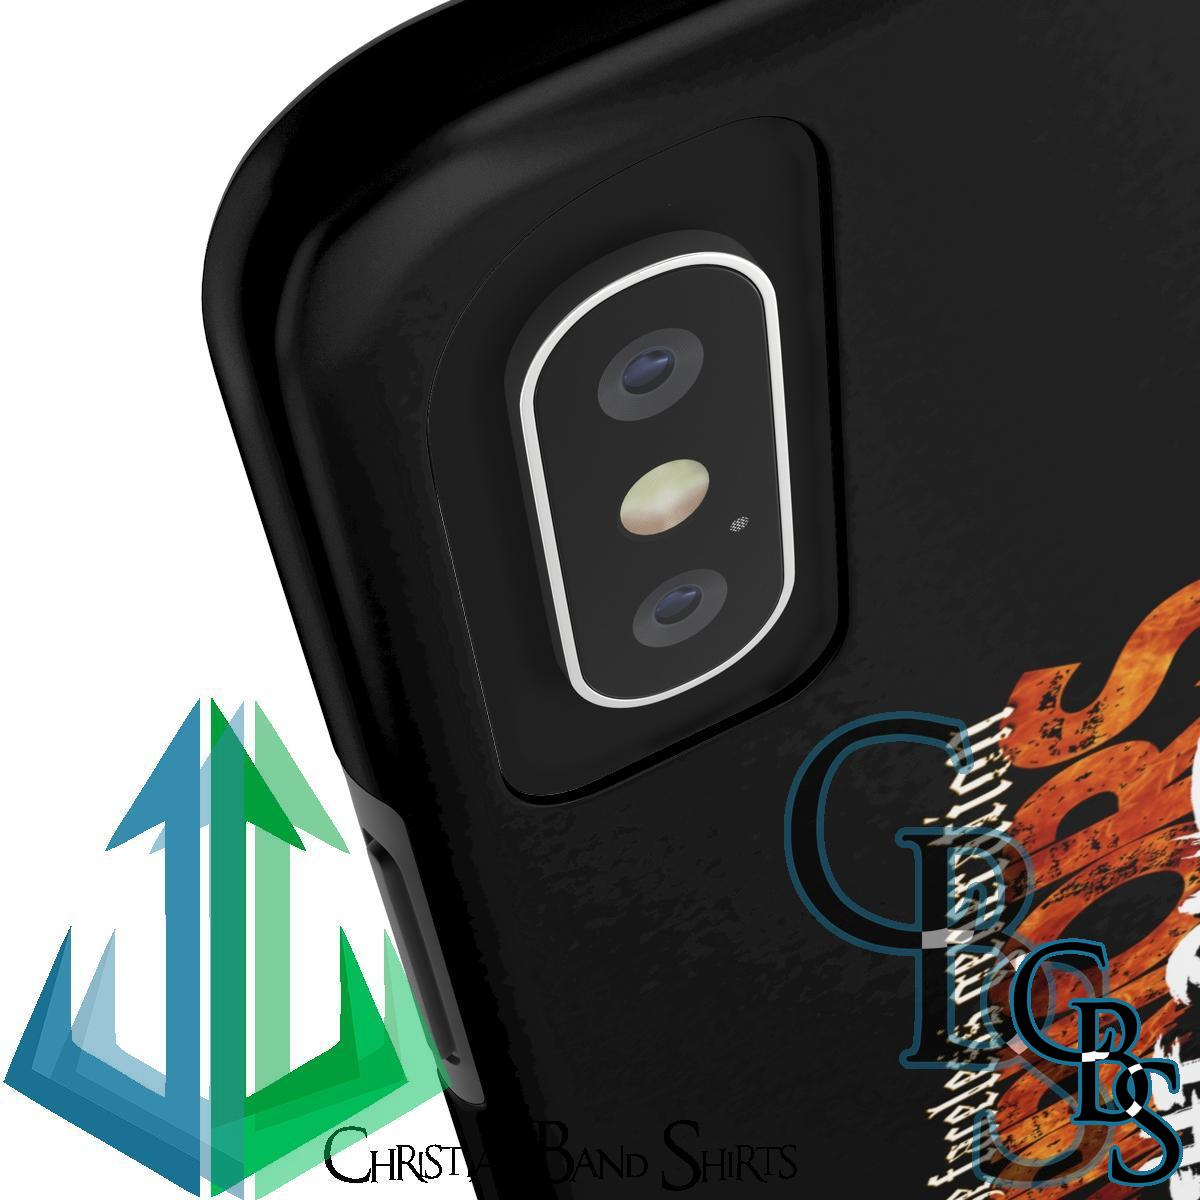 Warrior's Night Out Logo Tough iPhone Cases (iPhone 7/7 Plus, iPhone 8/8 Plus, iPhone X, XS, XR, iPhone 11, 11 Pro, 11 Pro Max)